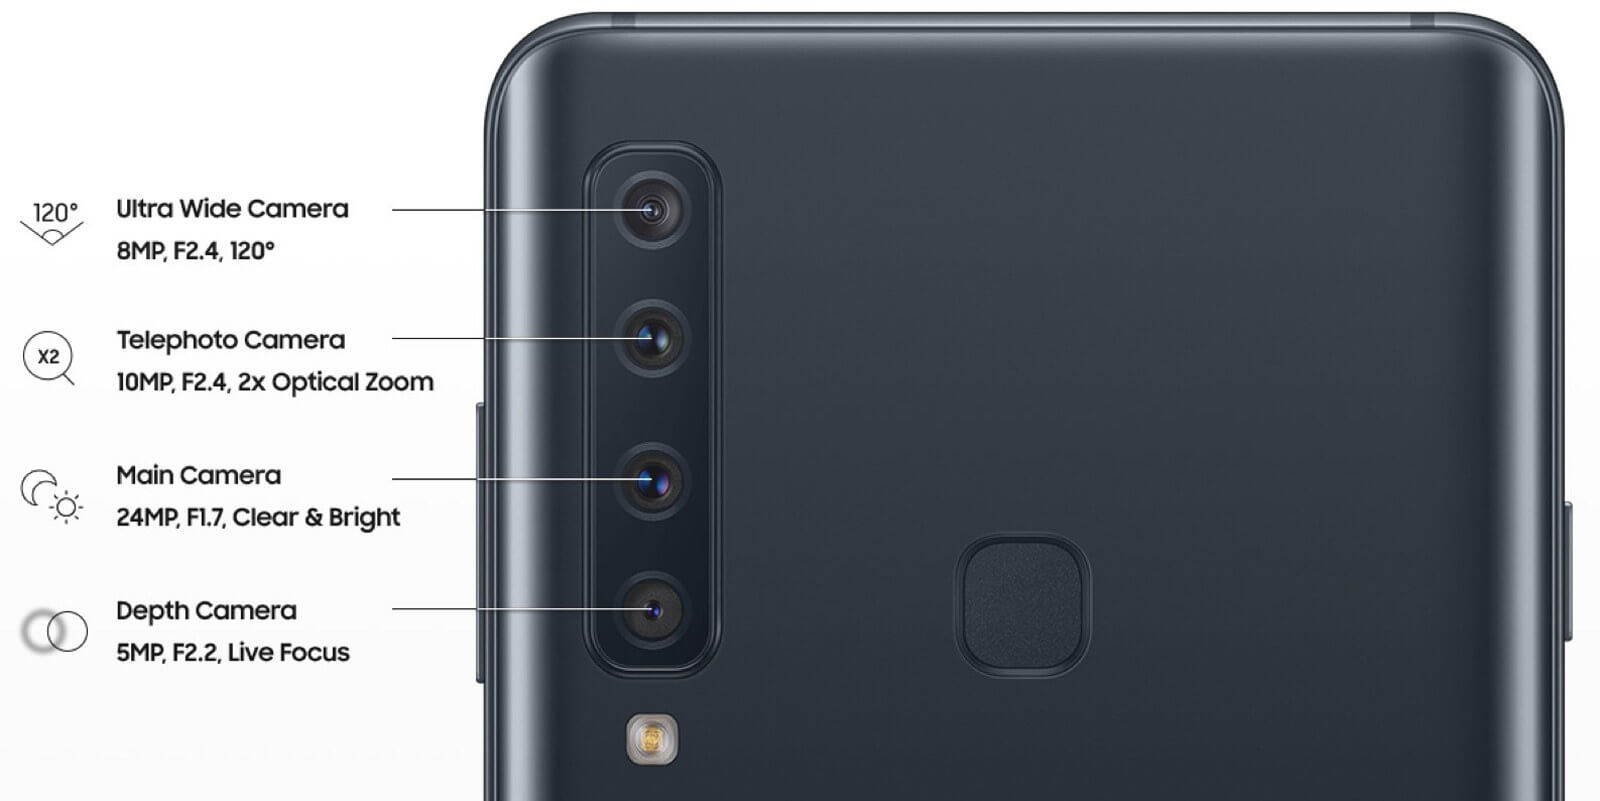 Leaks Suggest Samsung is Working on a Mid-range Smartphone with Four Cameras